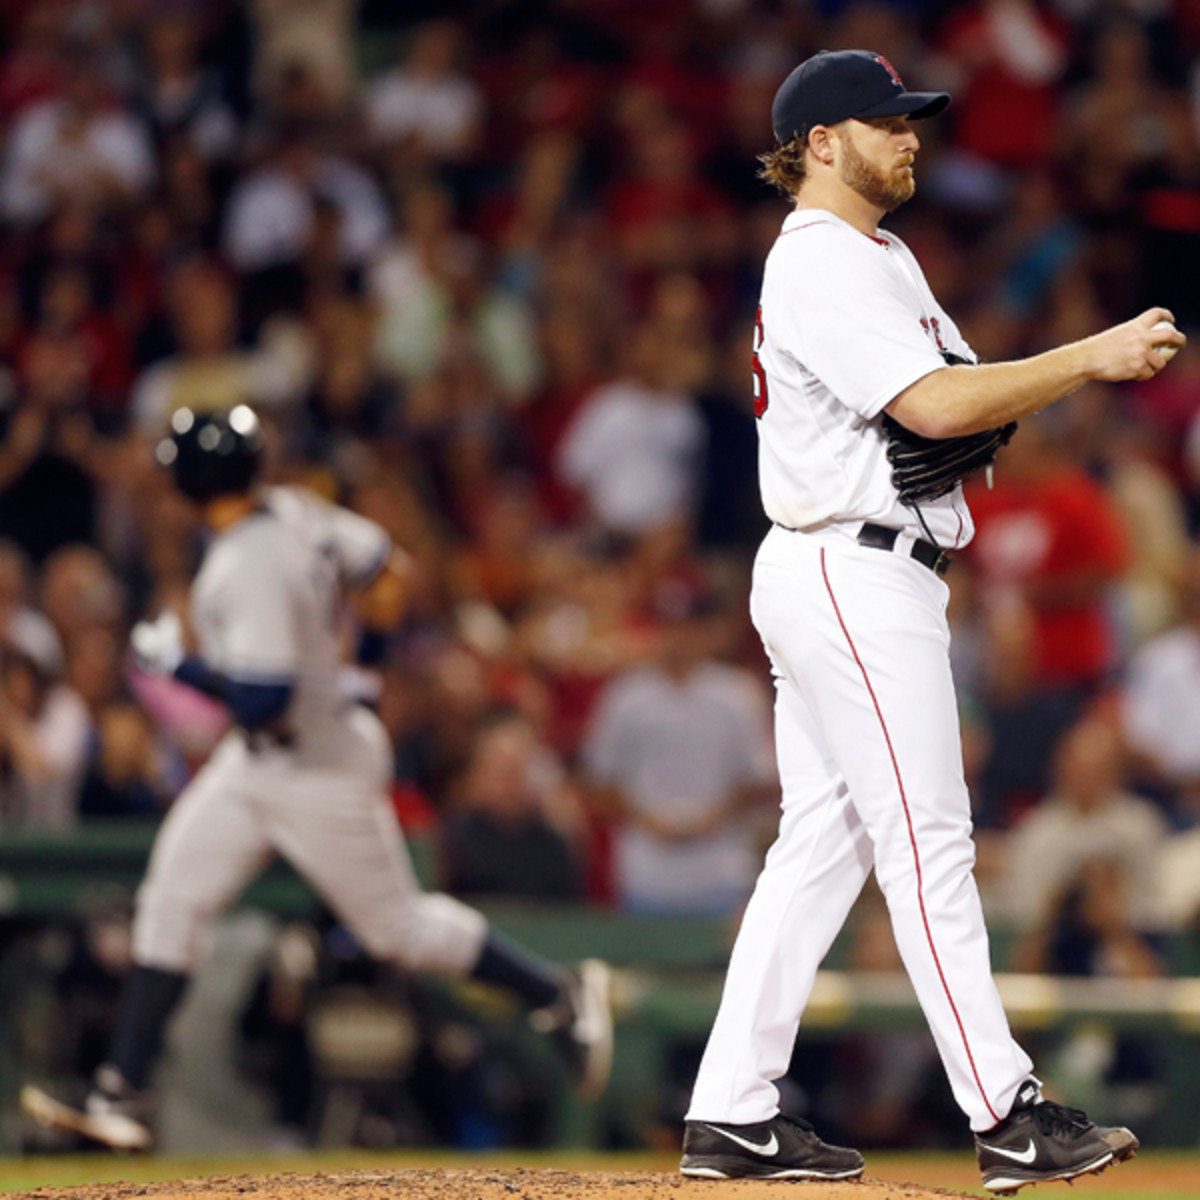 Ryan Dempster was given a five-game suspension for throwing at Alex Rodriguez. (Jared Wickerham/Getty Images)